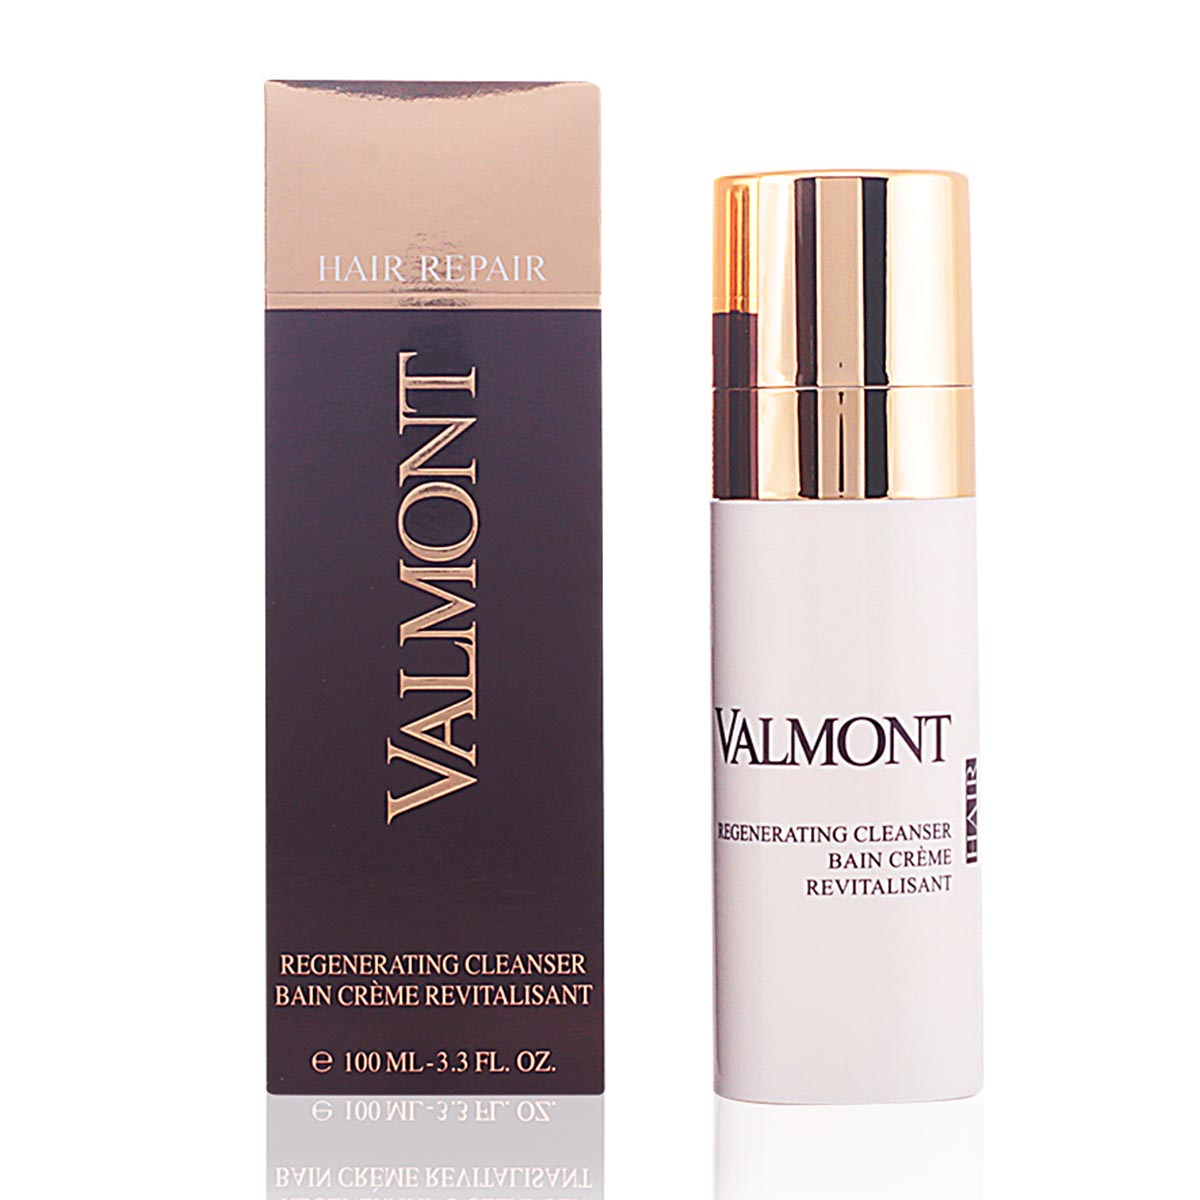 Valmont hair repair regenerating cleanser 100ml